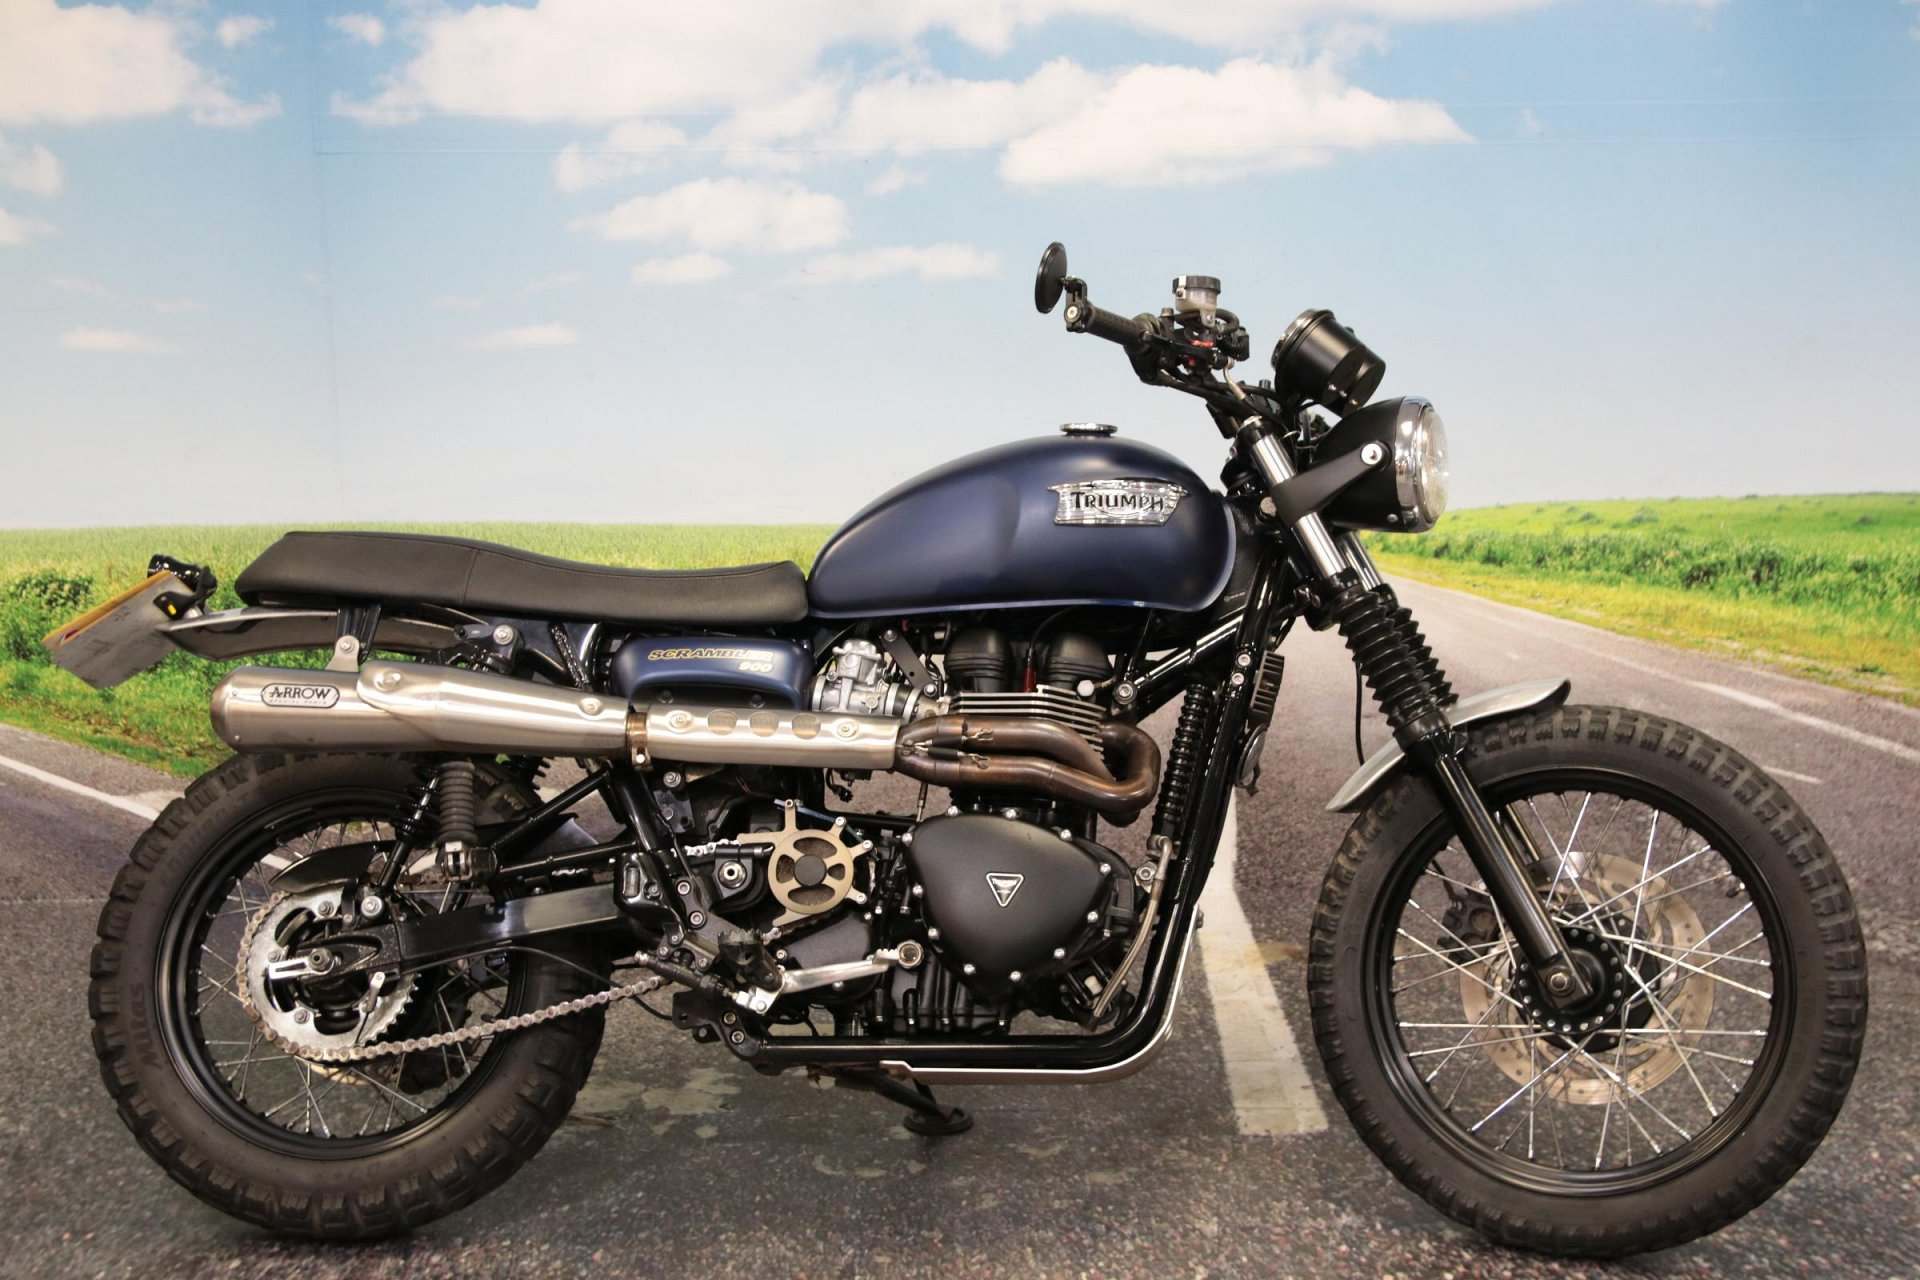 2016 Triumph Bonneville Scrambler for sale in South Wales